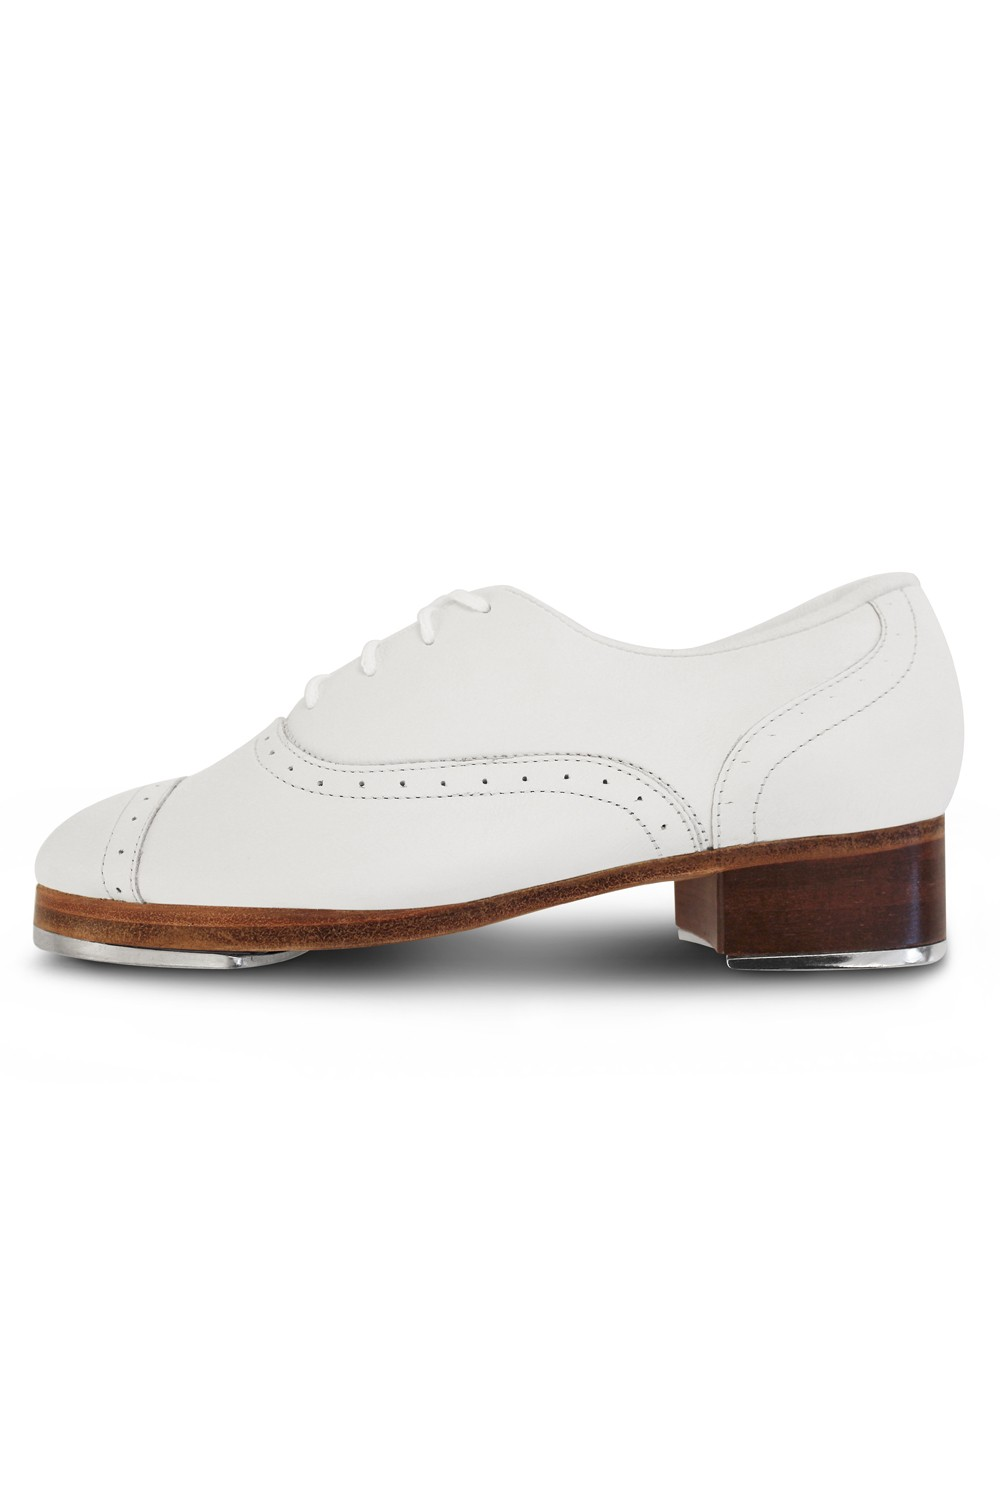 Jason Samuells Smith Women's Tap Shoes